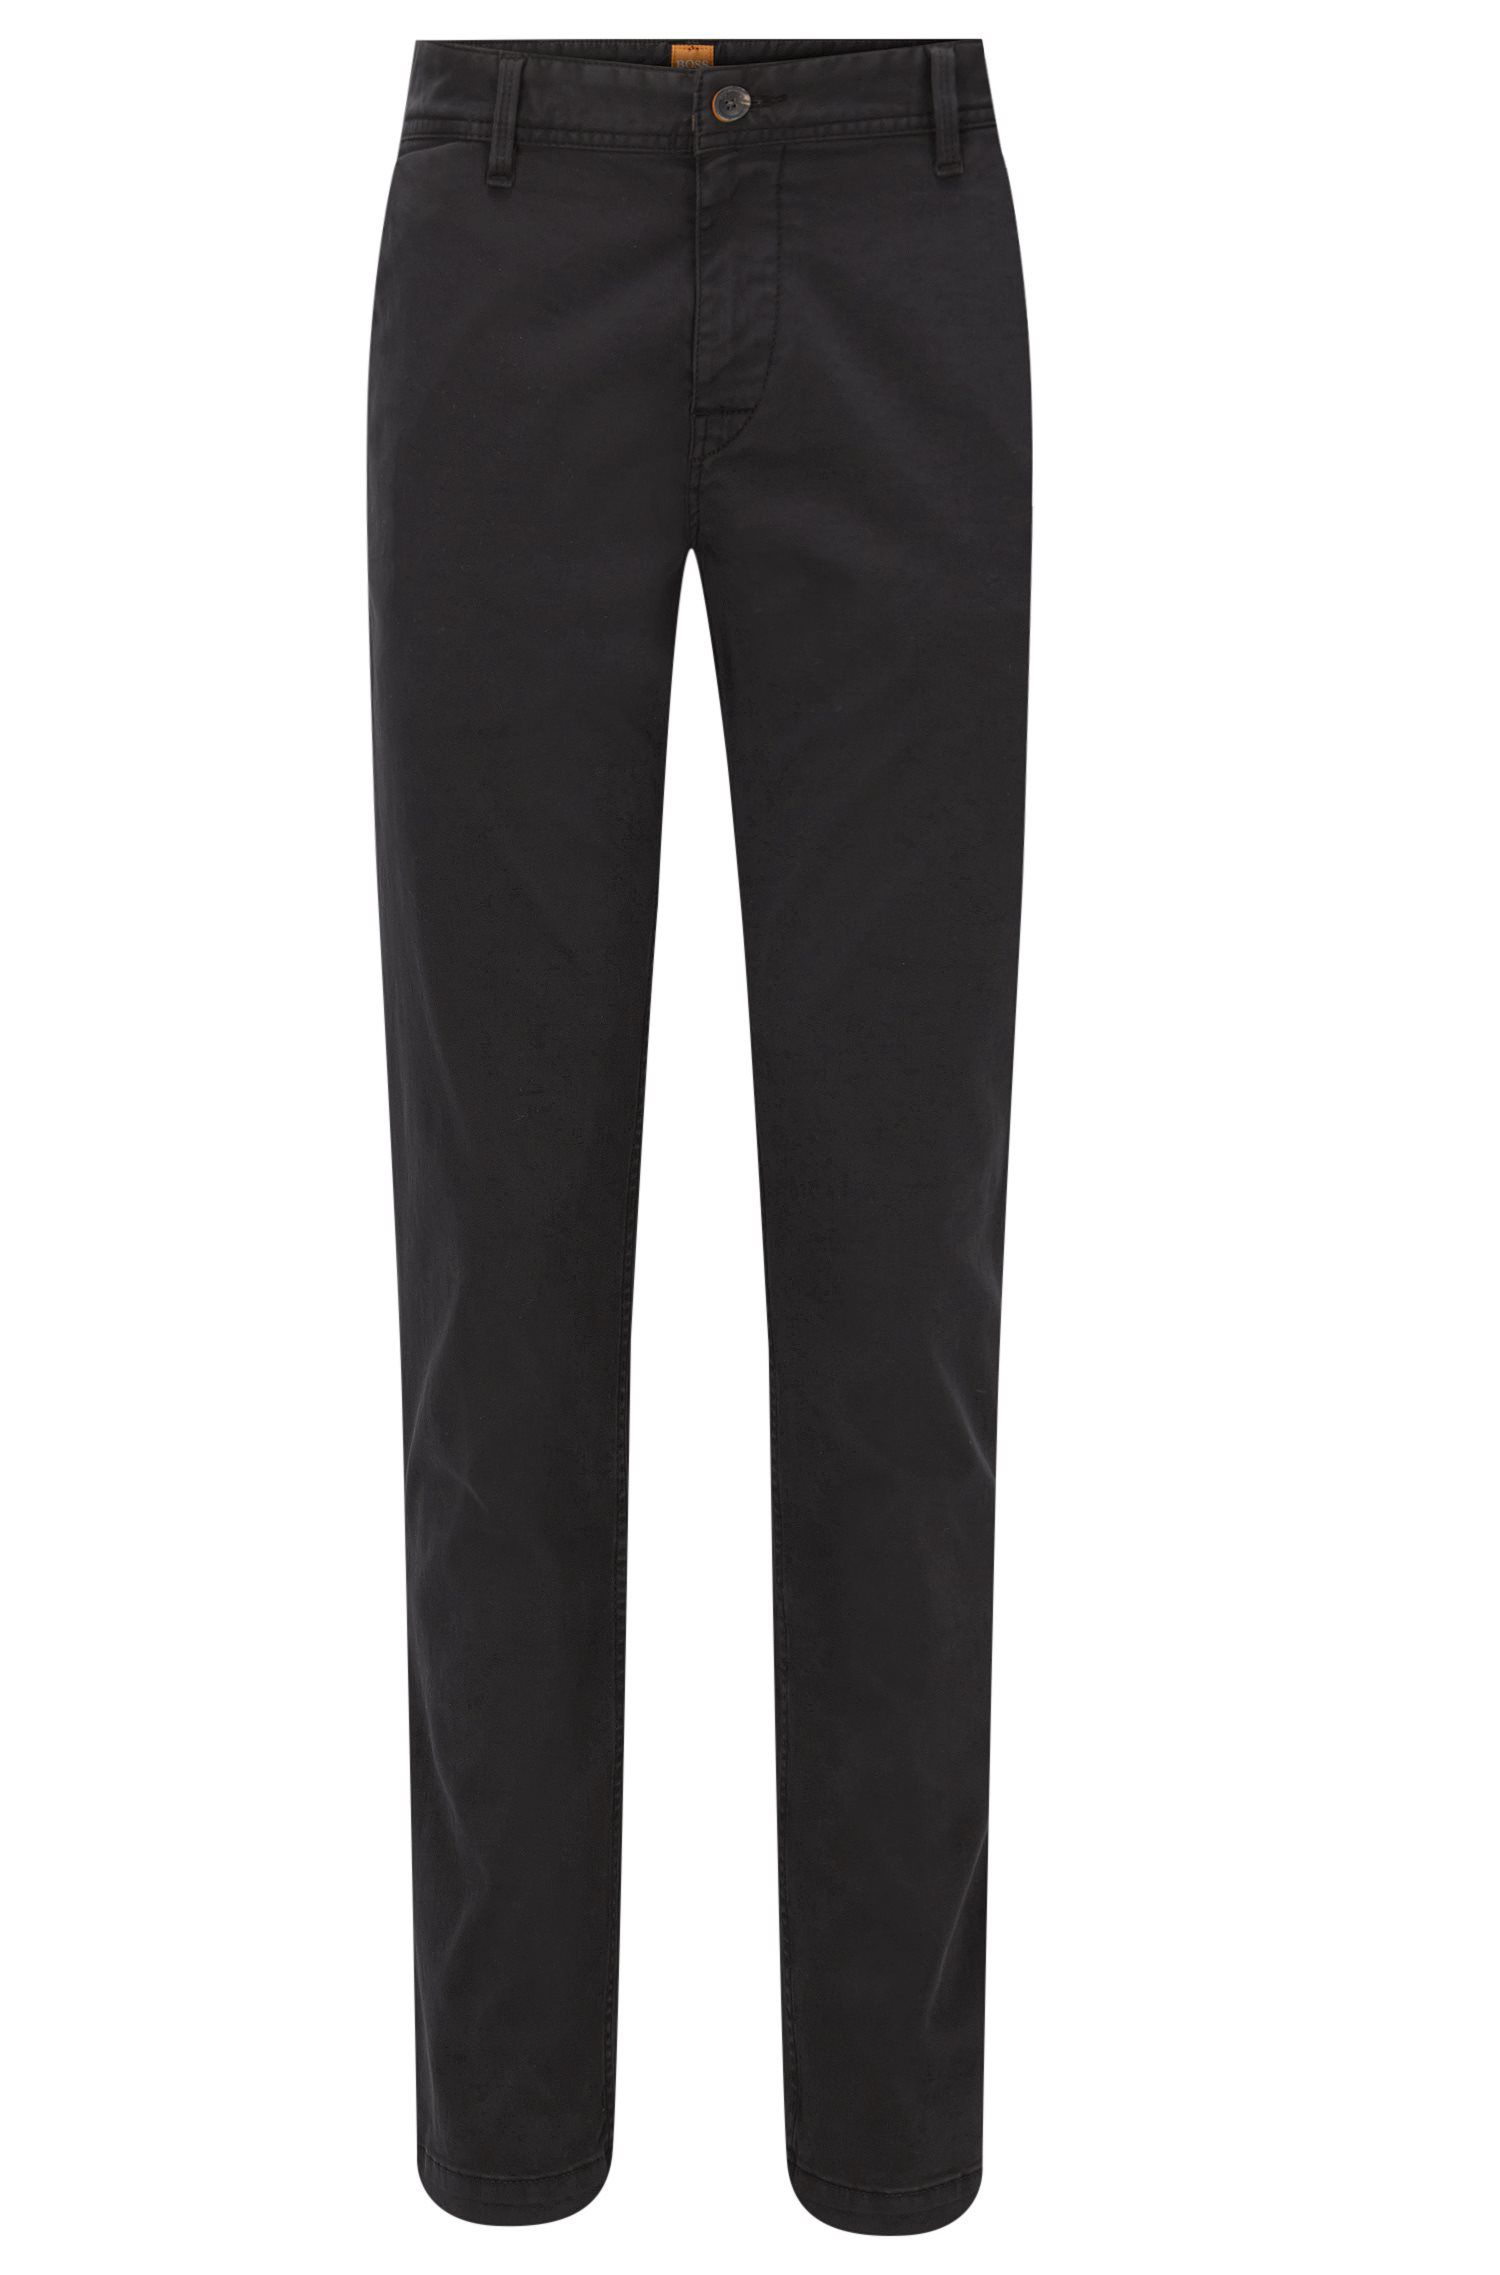 'Schino Slim D' | Slim Fit, Stretch Cotton Chino Pants